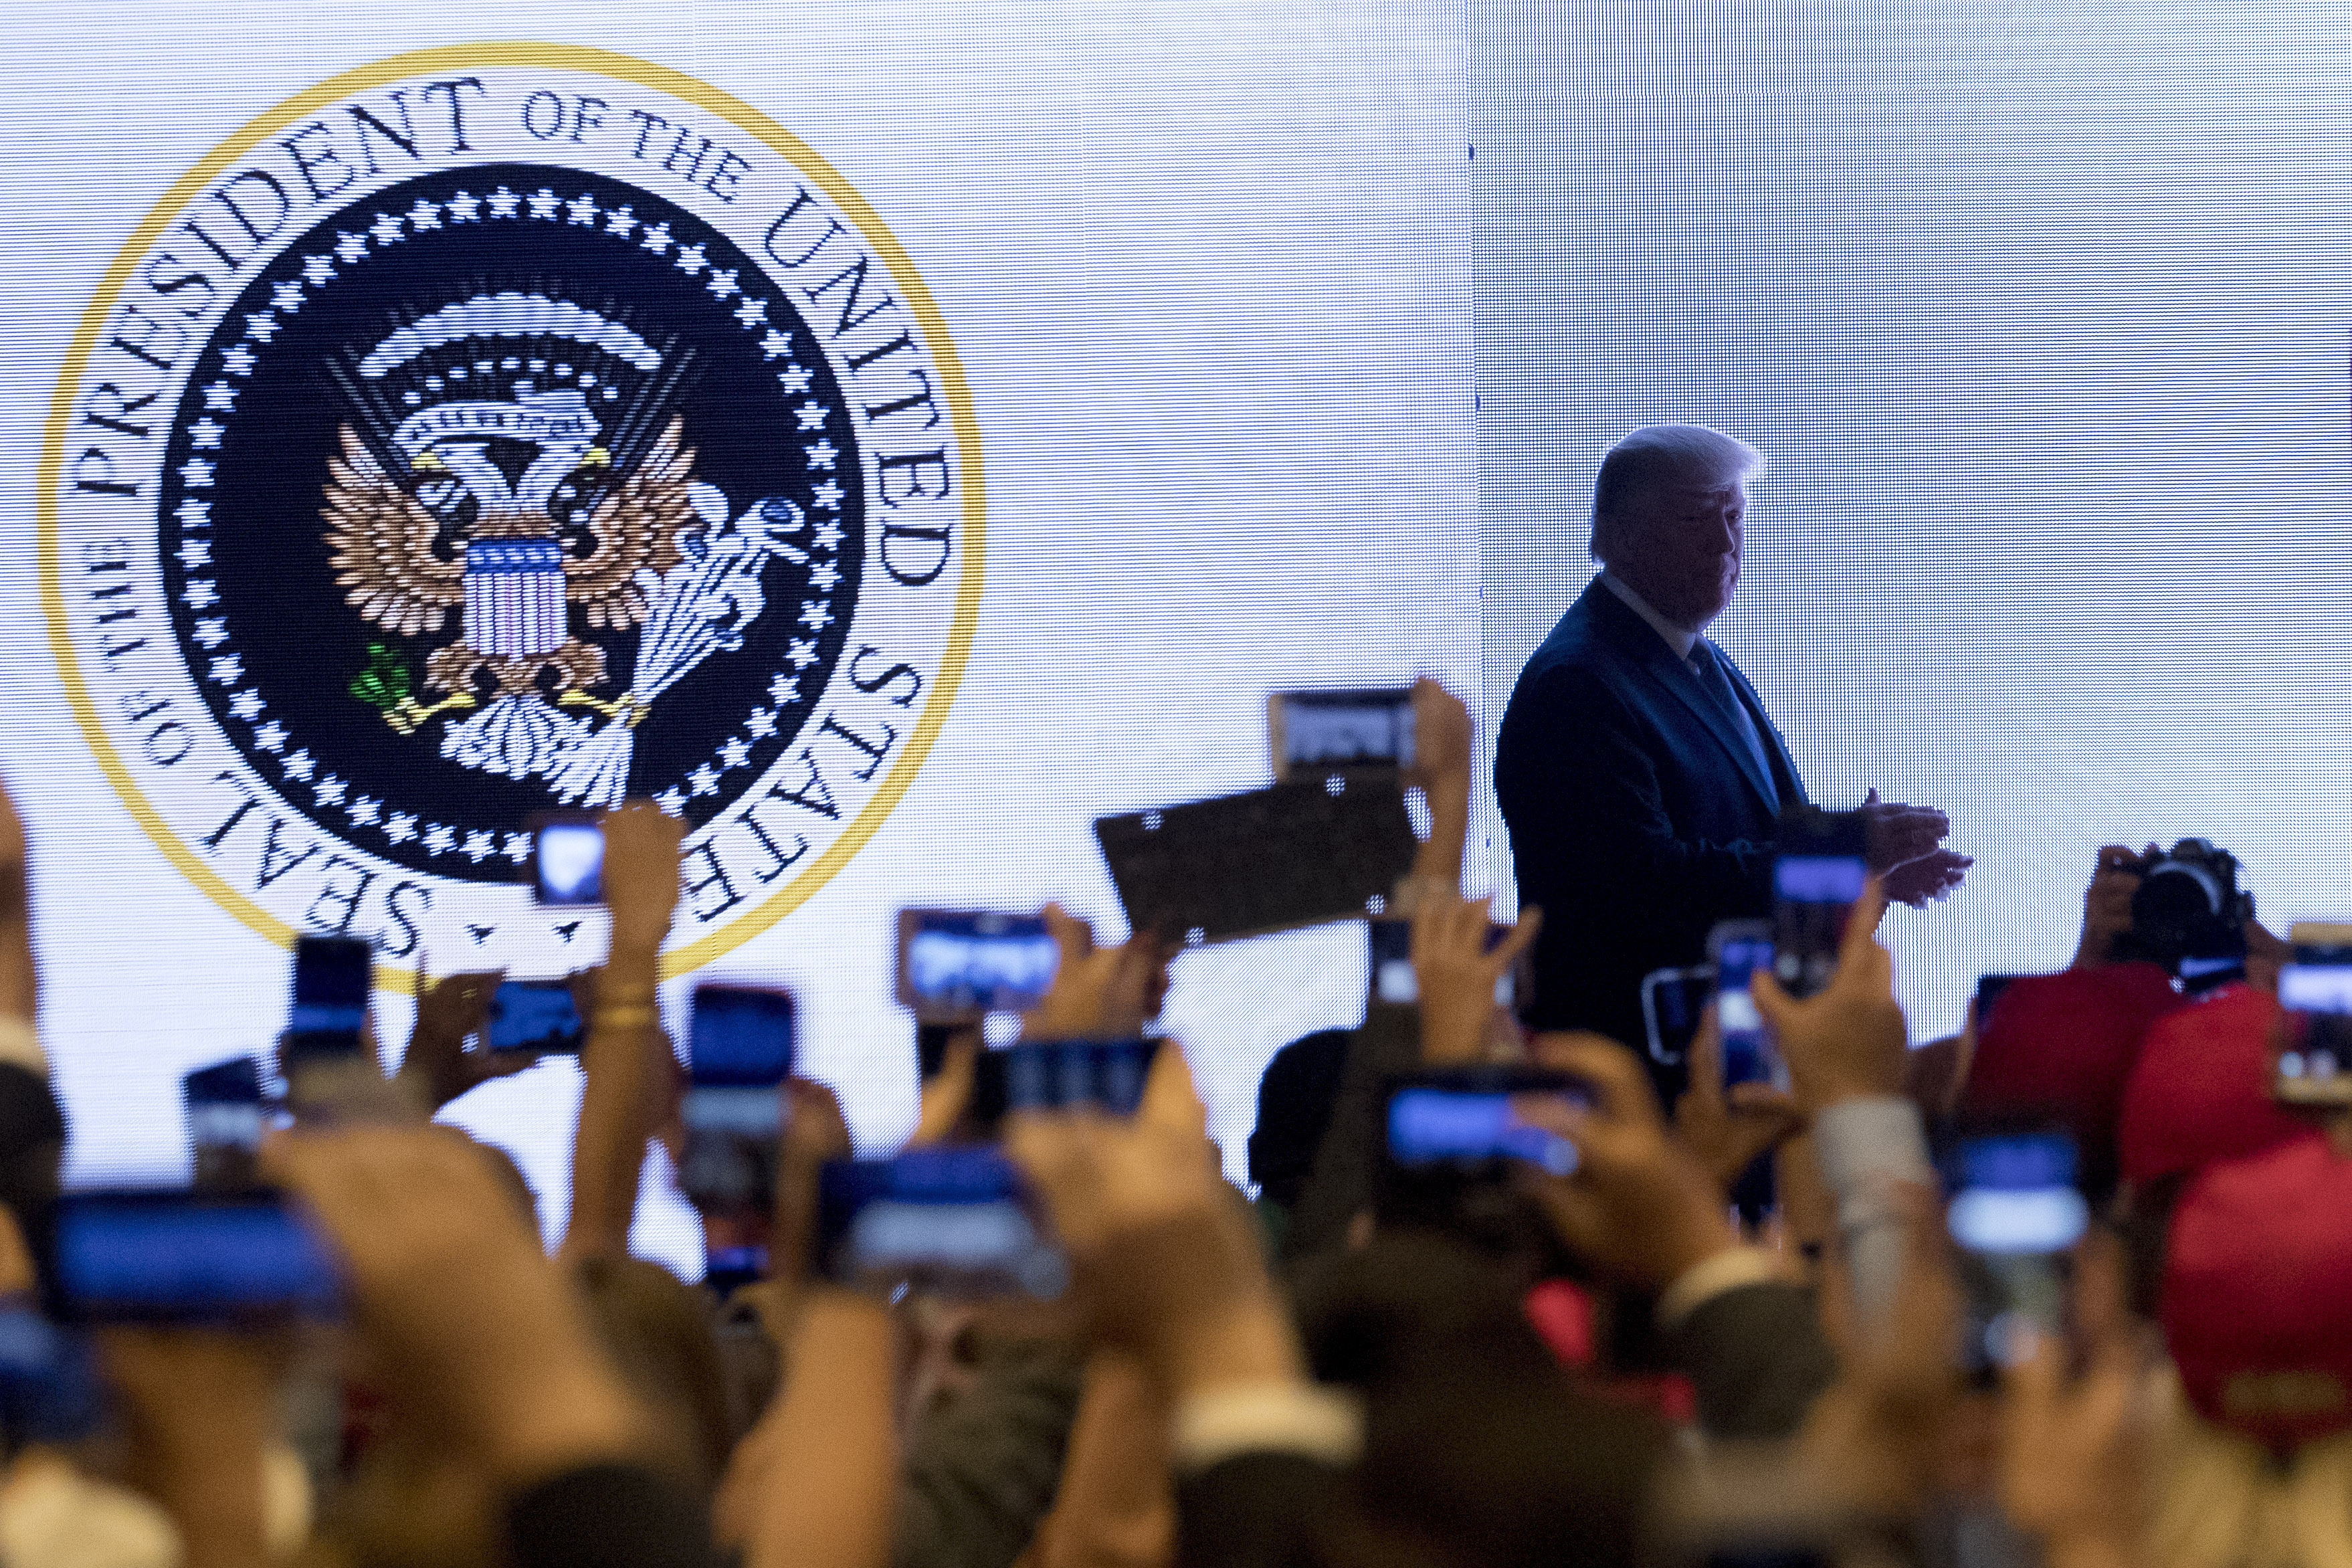 Two-Headed Eagle In Fake Presidential Seal: What Does It Mean?